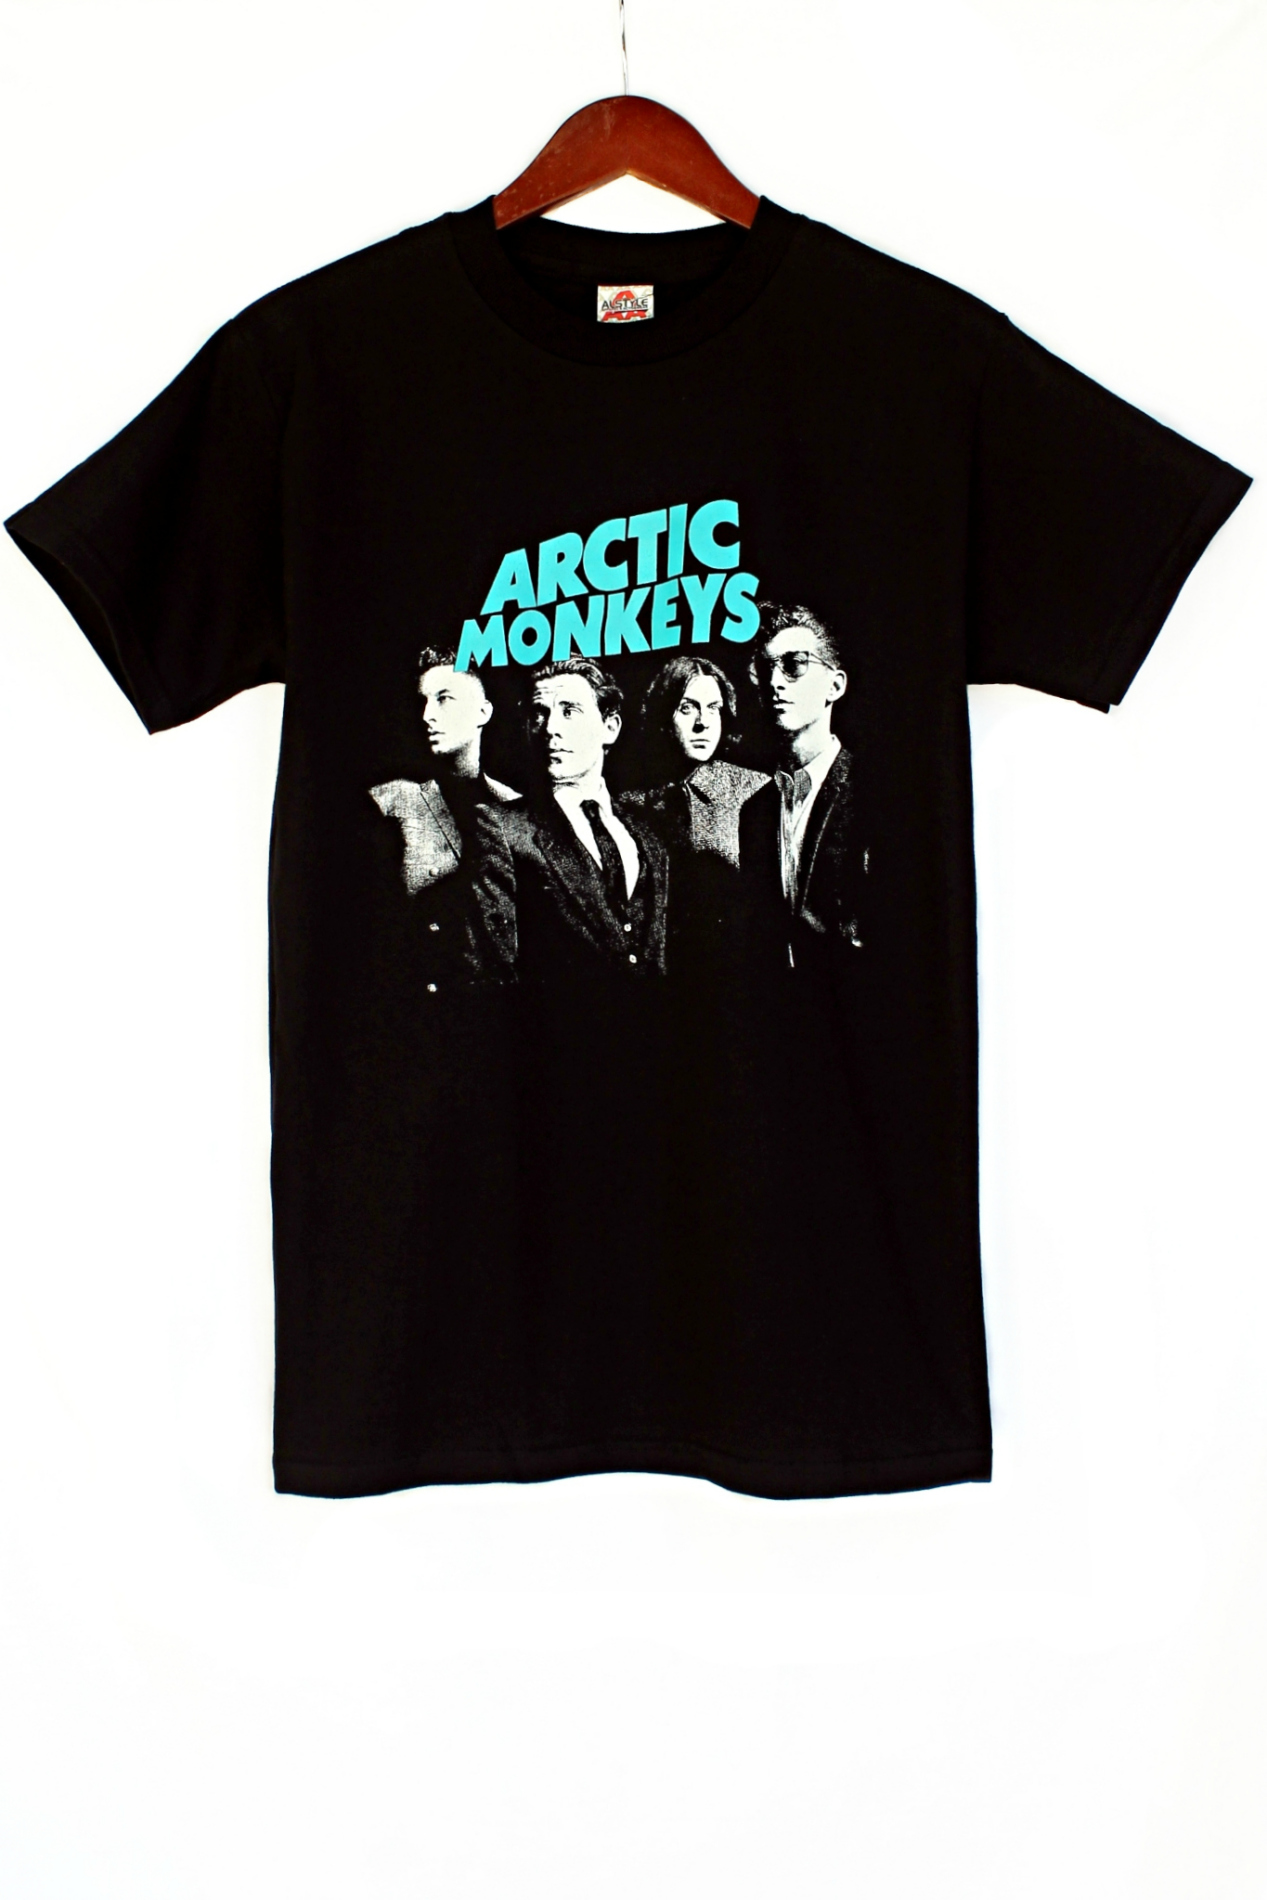 Arctic Monkeys T-Shirt | Just Vu